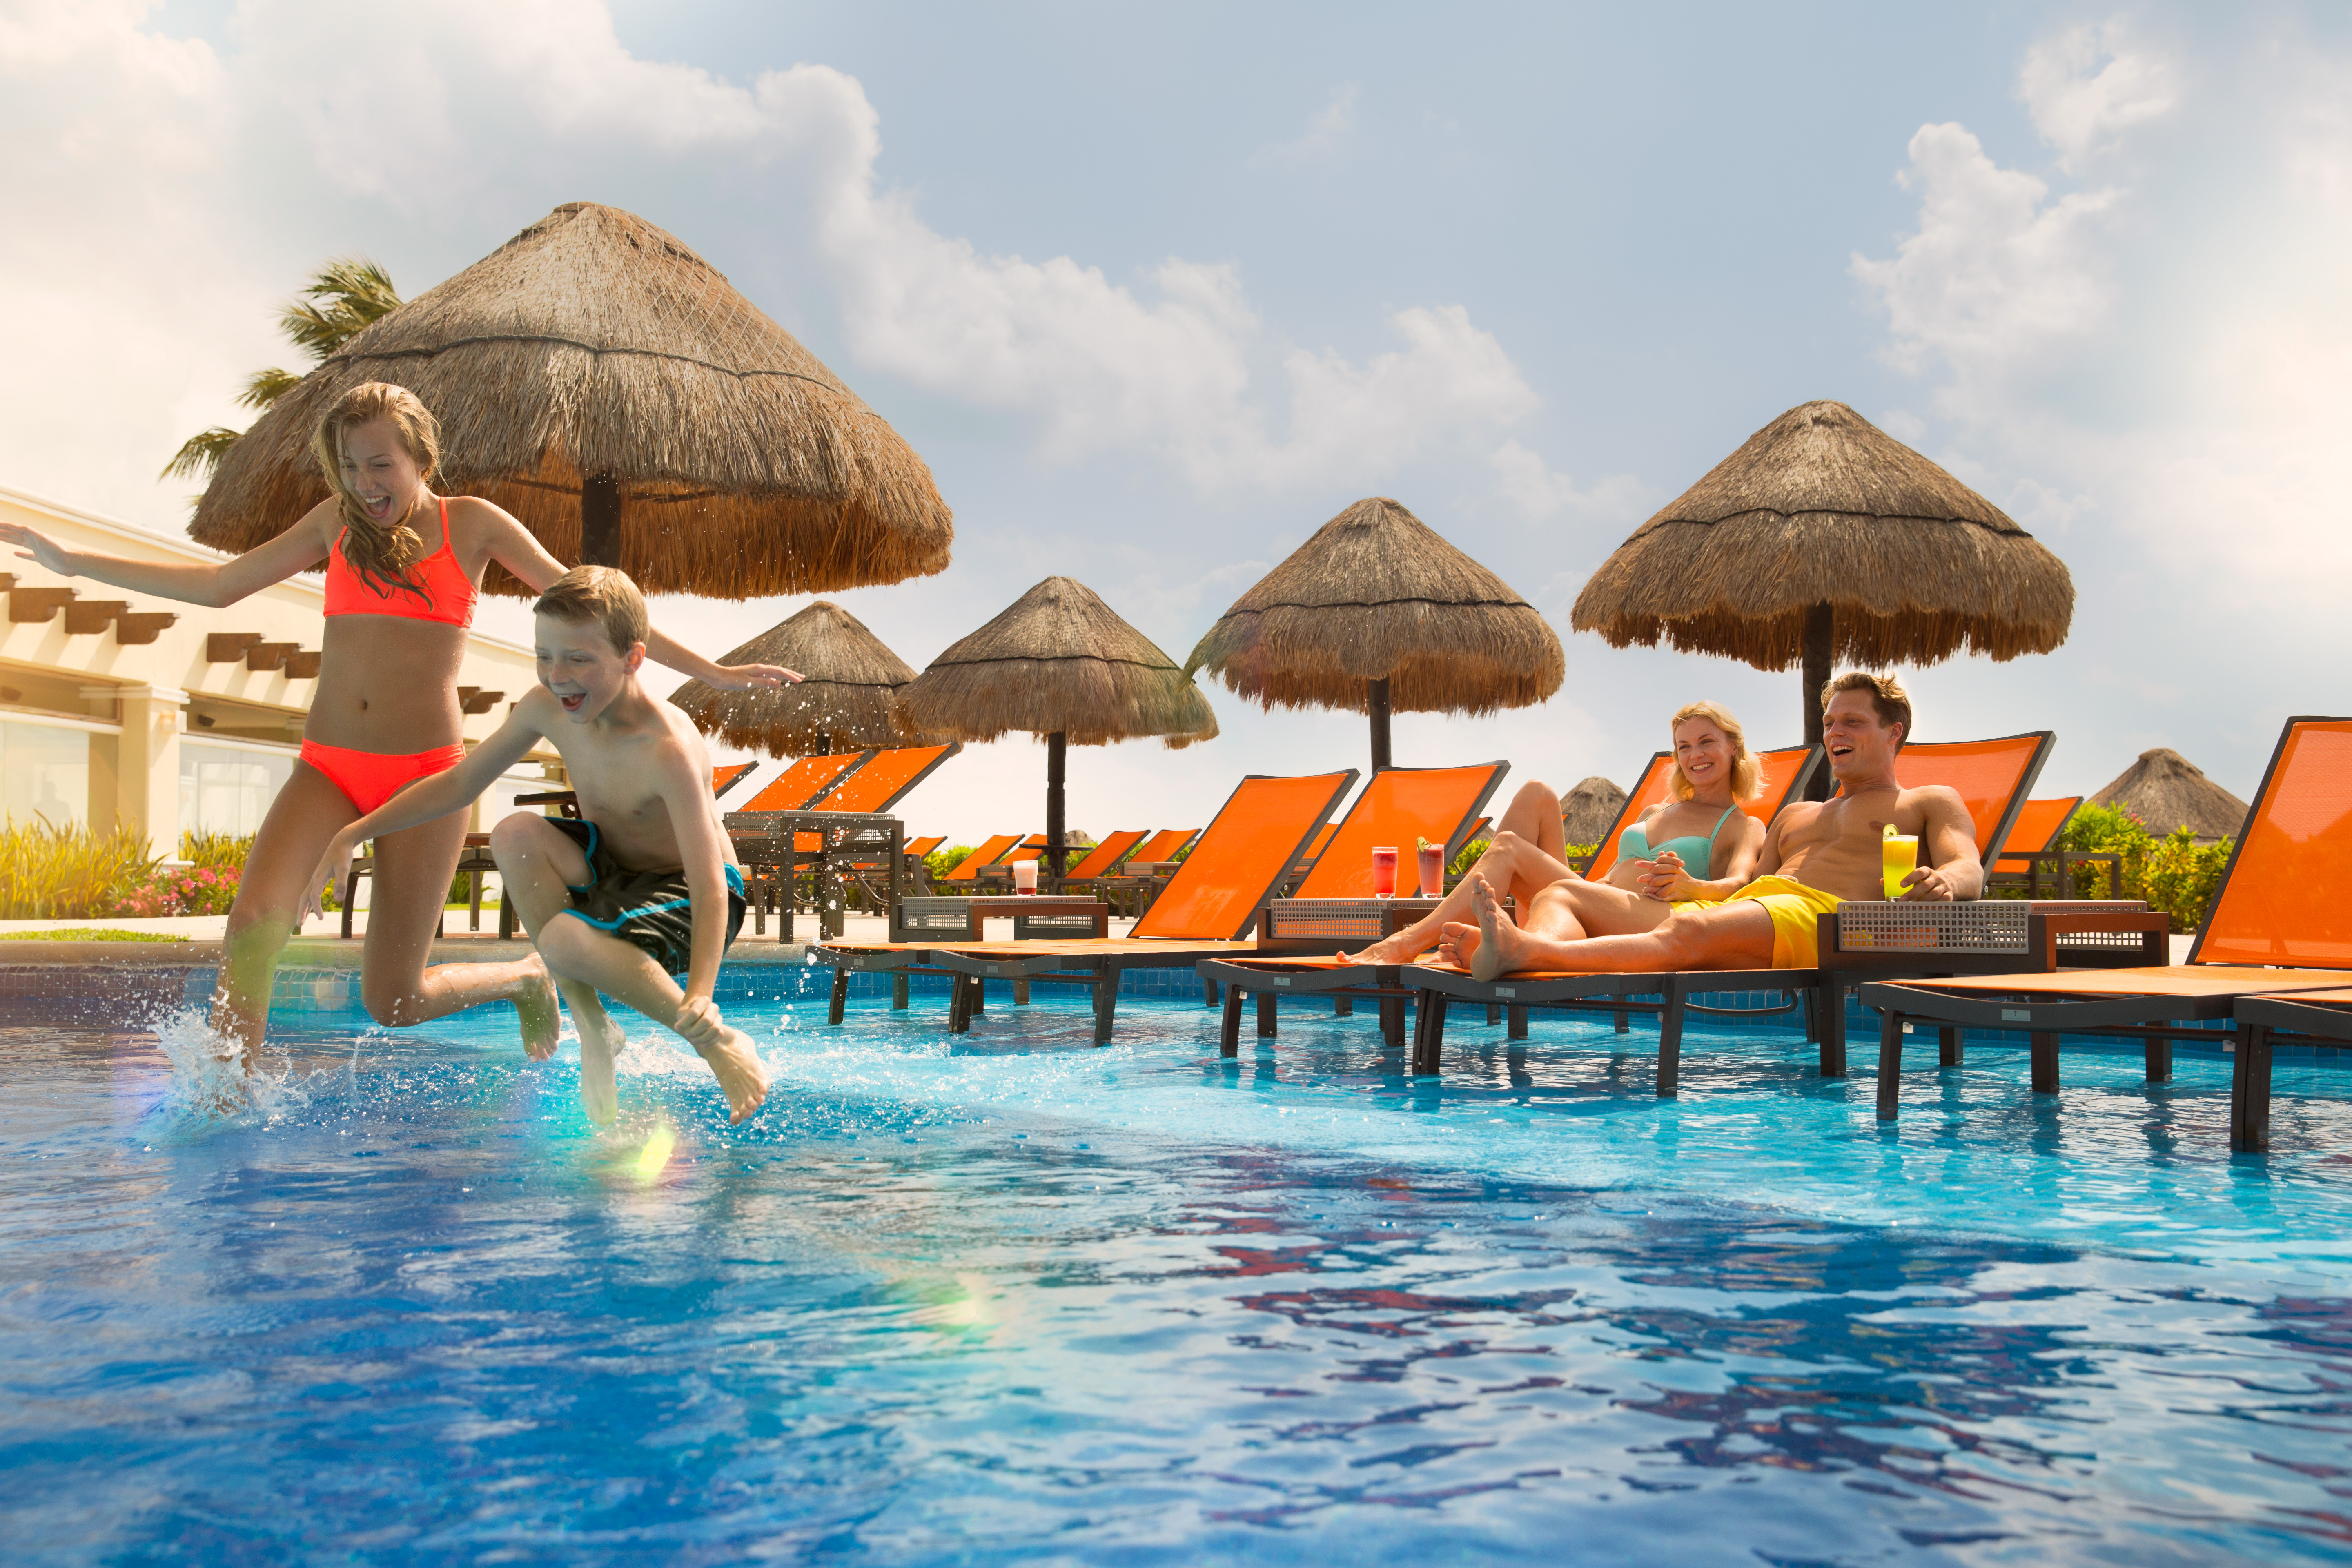 Exquisite Vacation Exclusive Travel Offers The